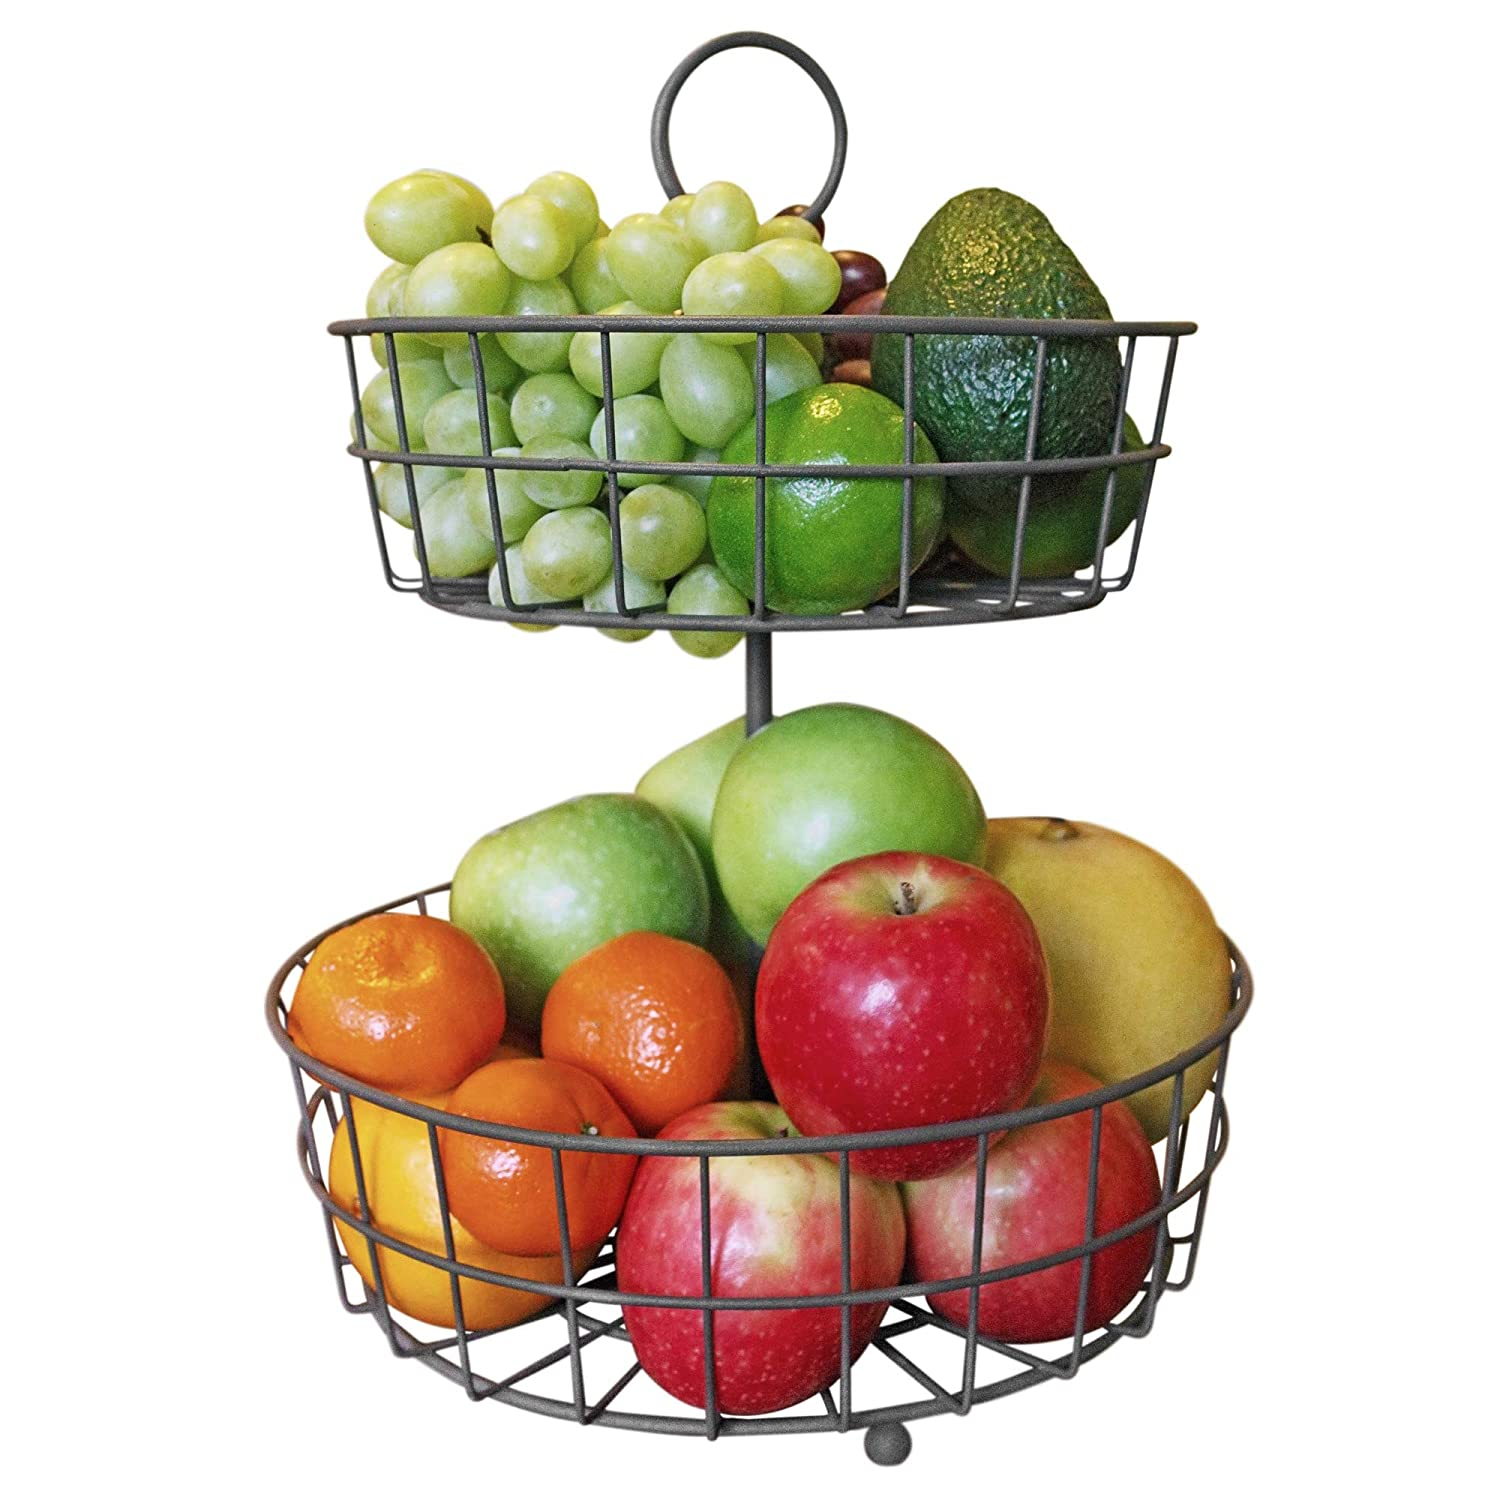 and More 2 Tier Fruit Basket Eggs Fruit Basket for Counter or Hanging | Two Tier Fruit Basket Stand for Storing /& Organizing Vegetables 2 Tier French Country Wire Basket by Regal Trunk /& Co